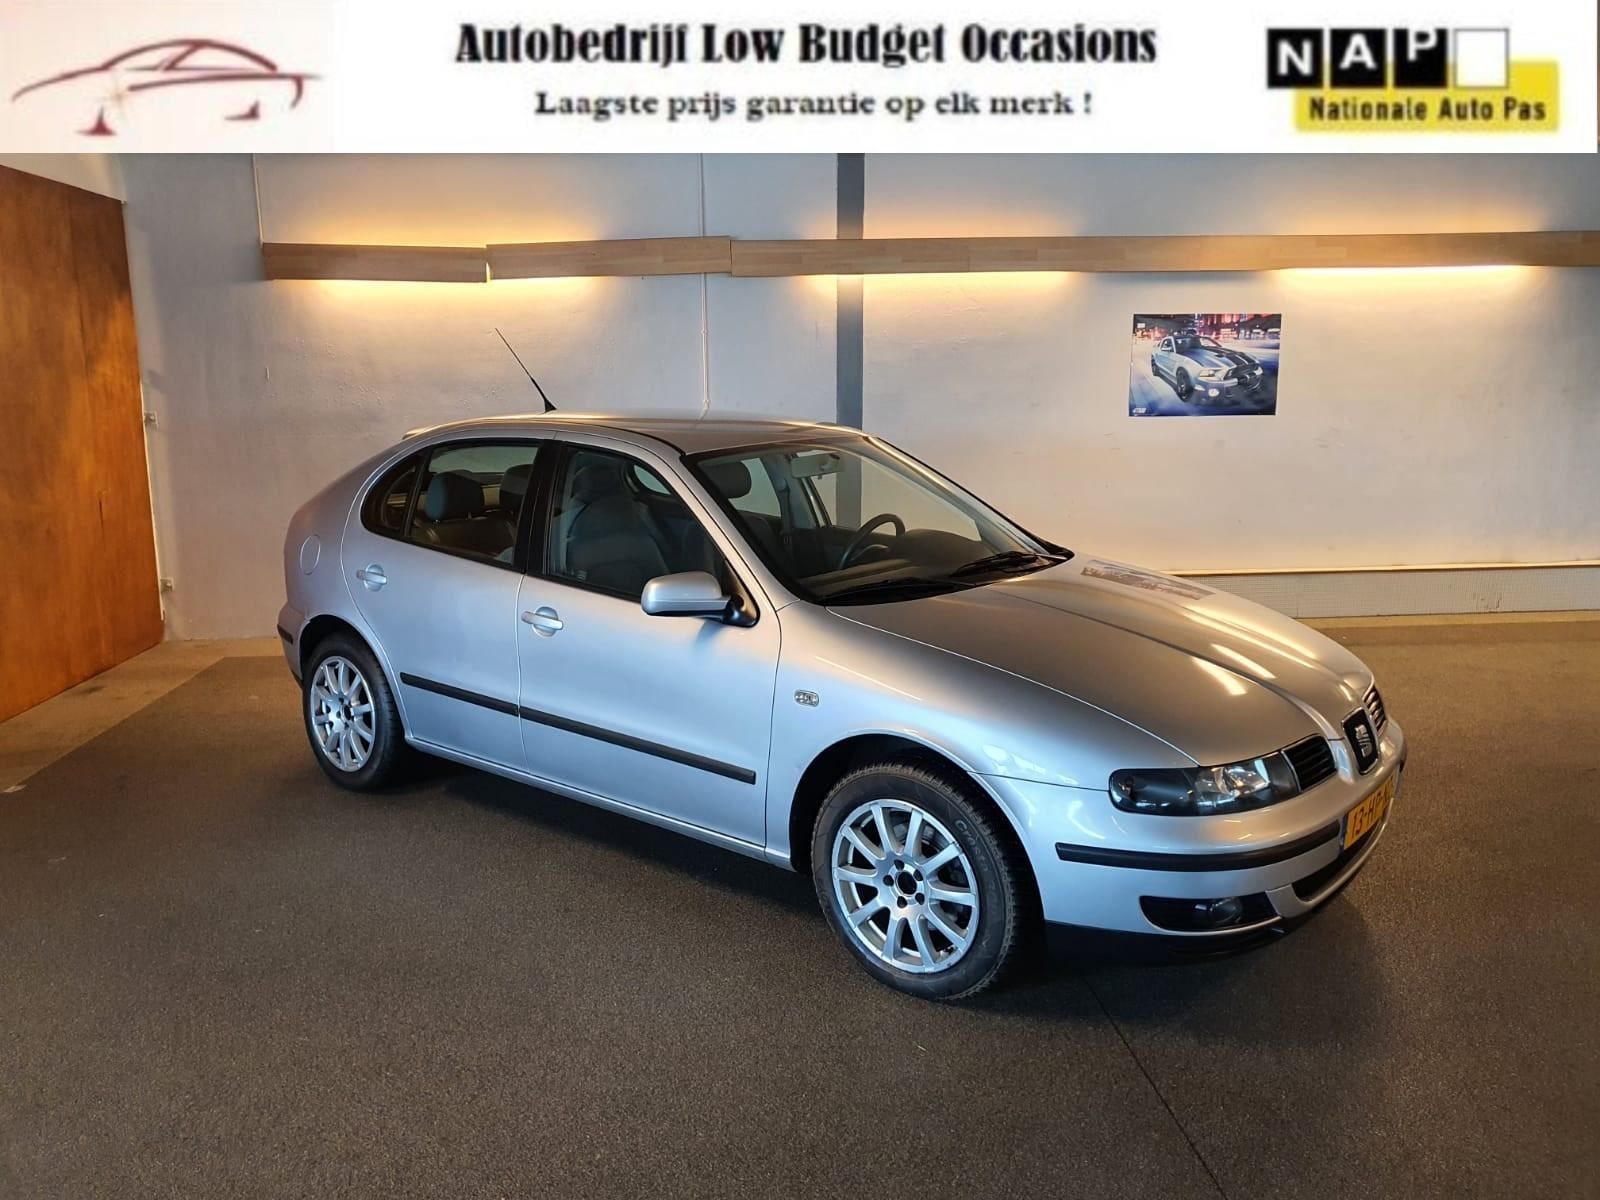 Seat Leon occasion - Low Budget Occasions